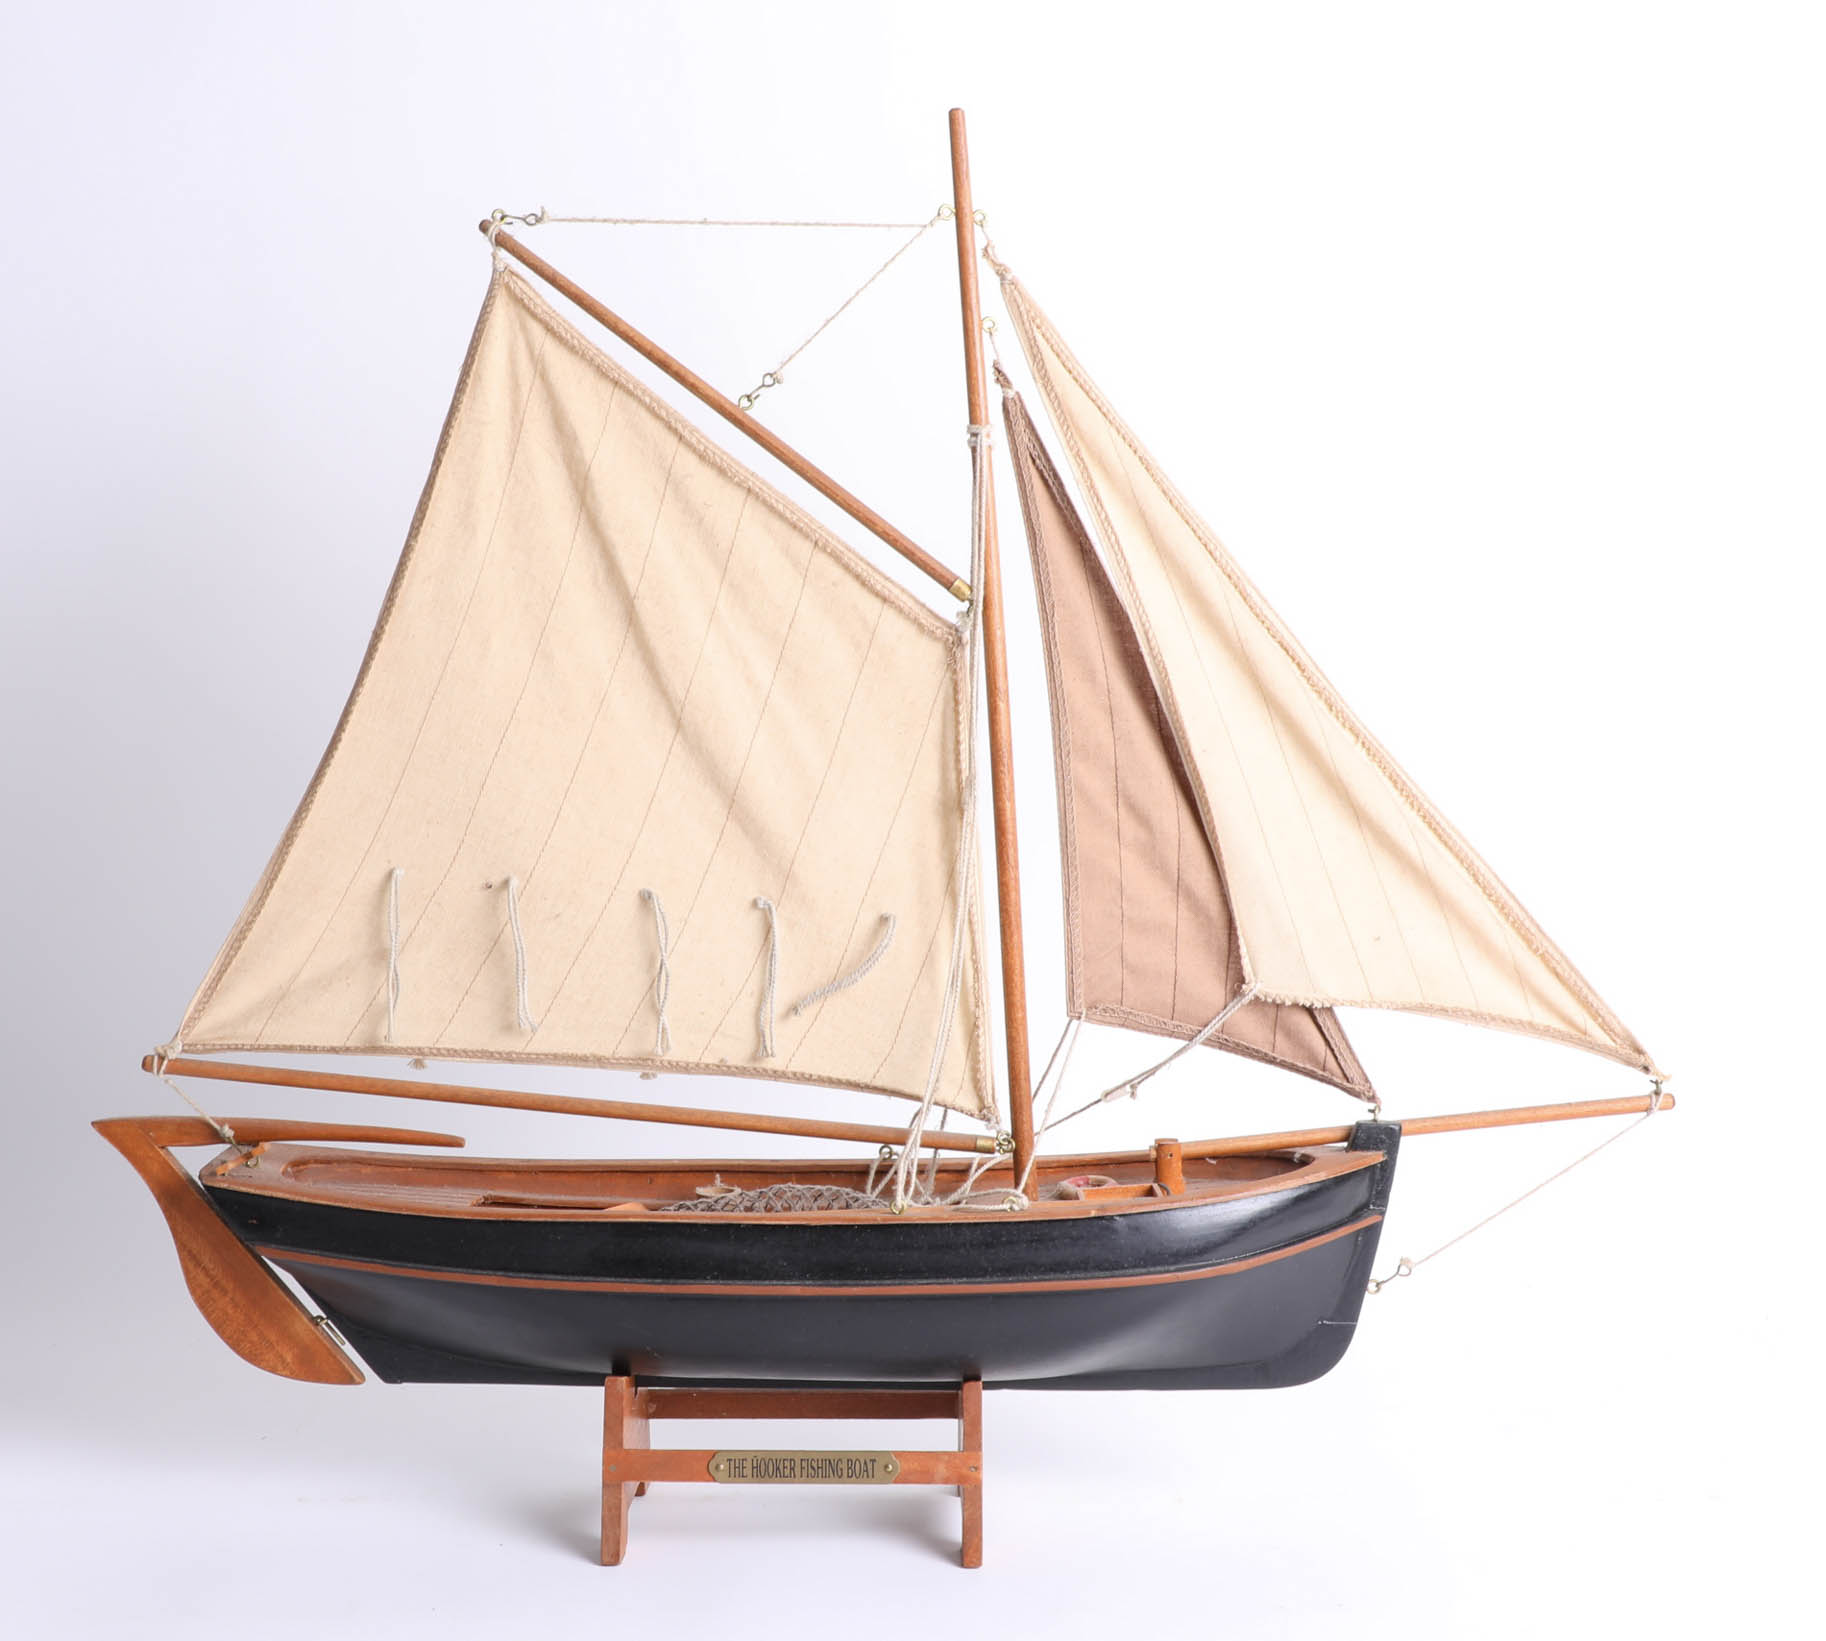 Lot 015 - A wooden model of the 'The Hooker' Fishing Boat.